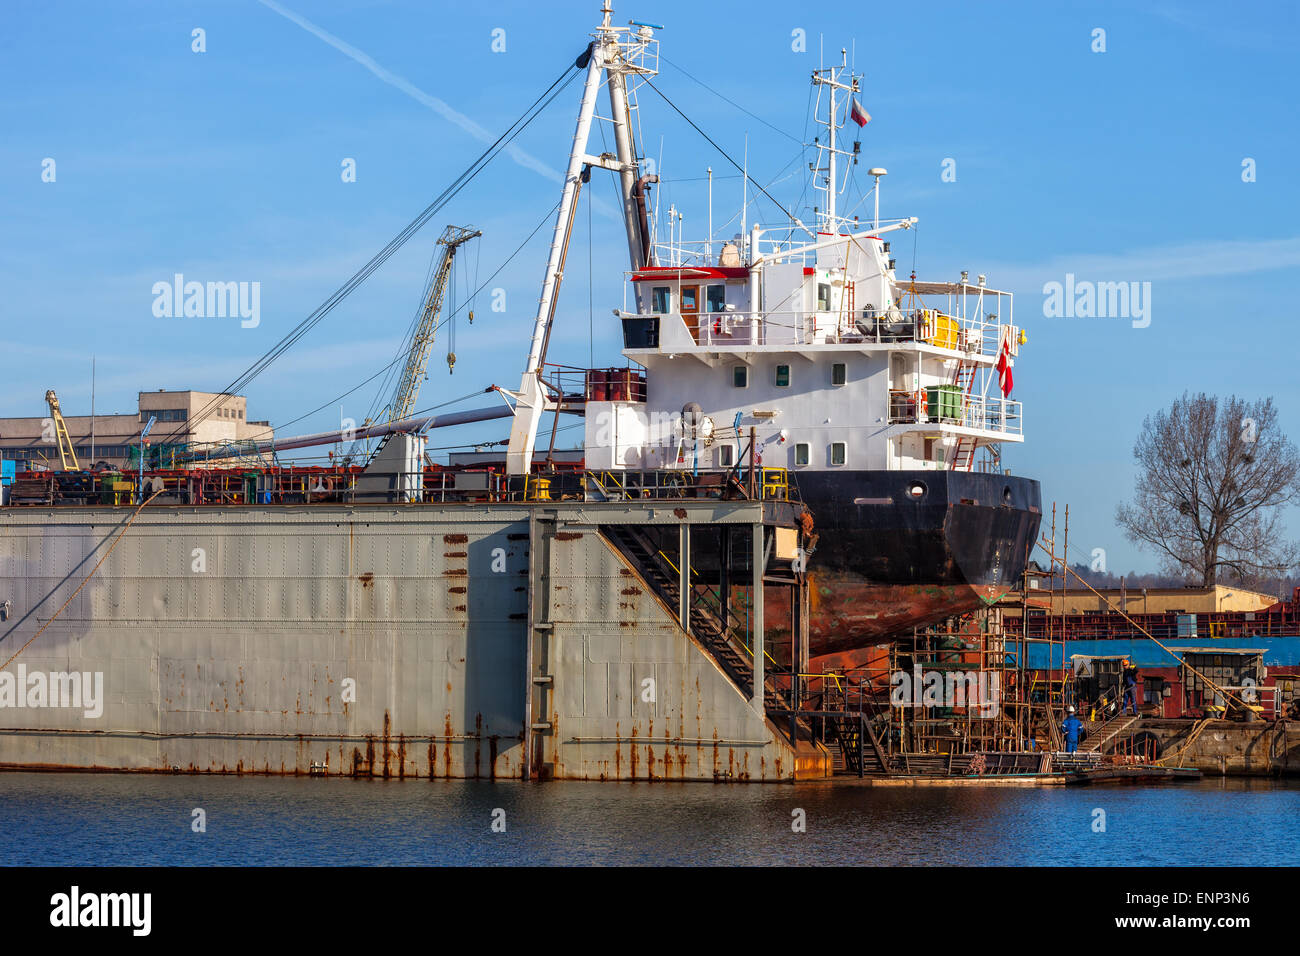 A view of a large ship under repair in dry dock at a shipyard. - Stock Image